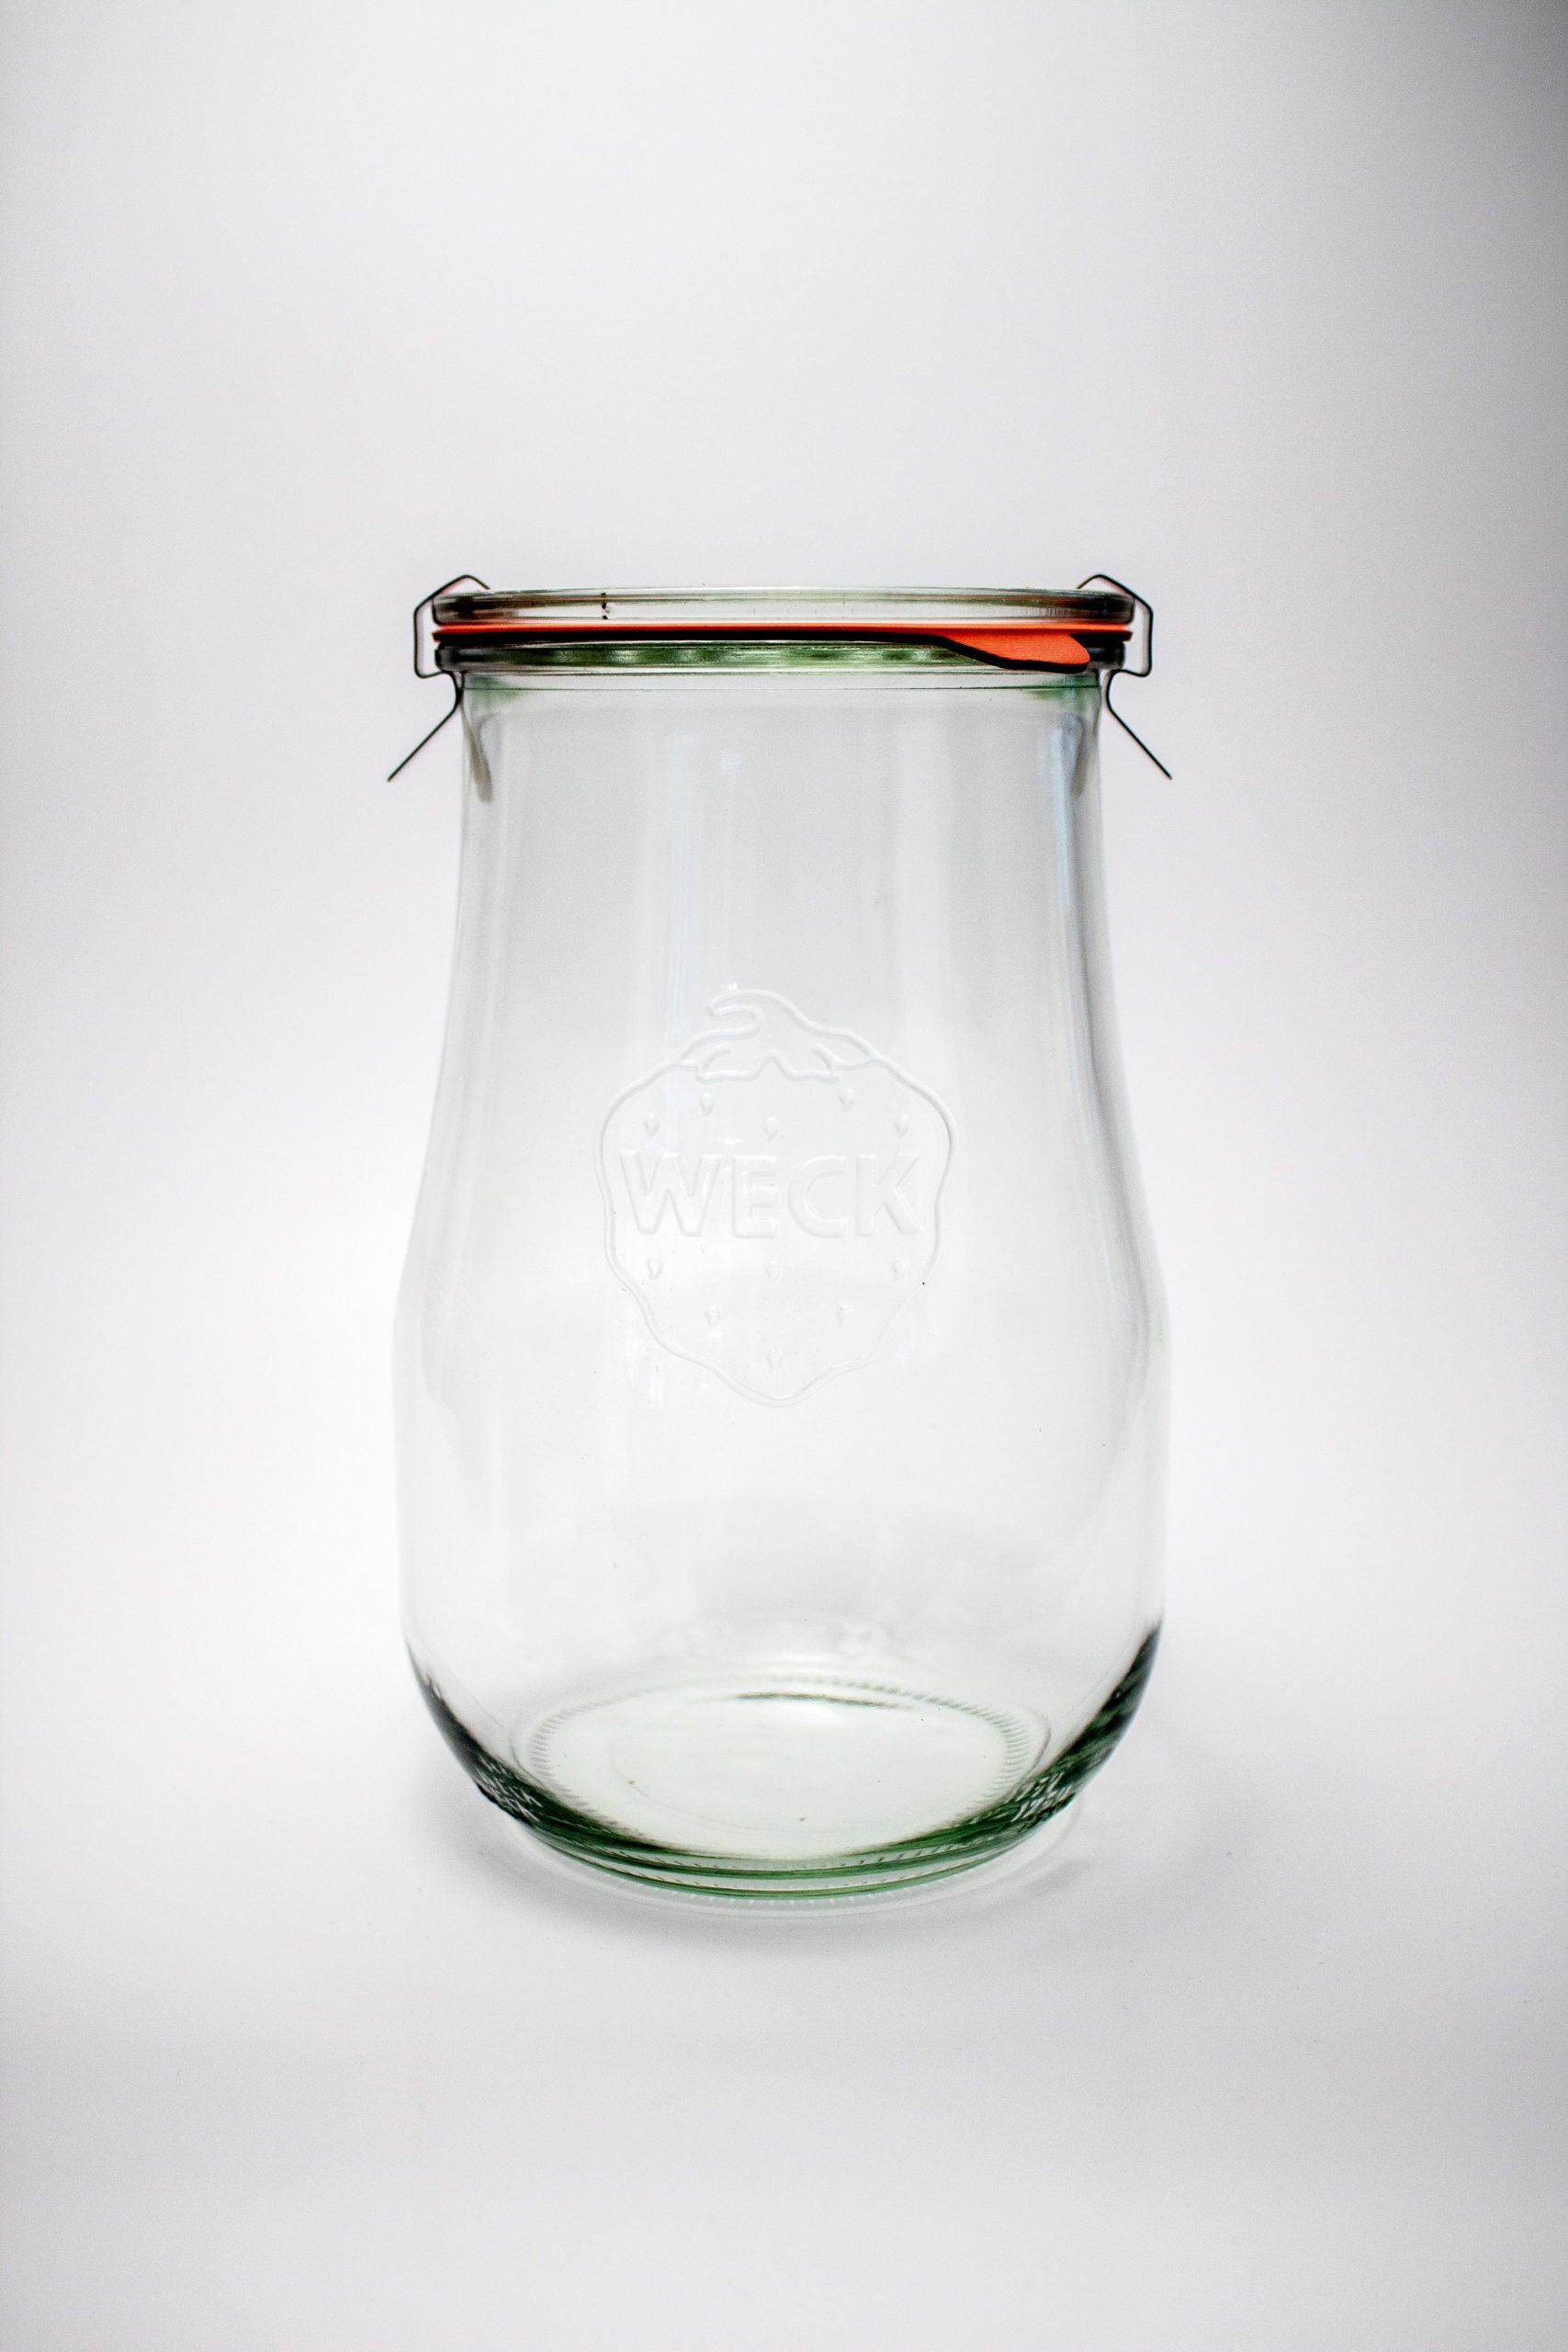 Keep your granola fresh in these glass Weck Tulip Jars!